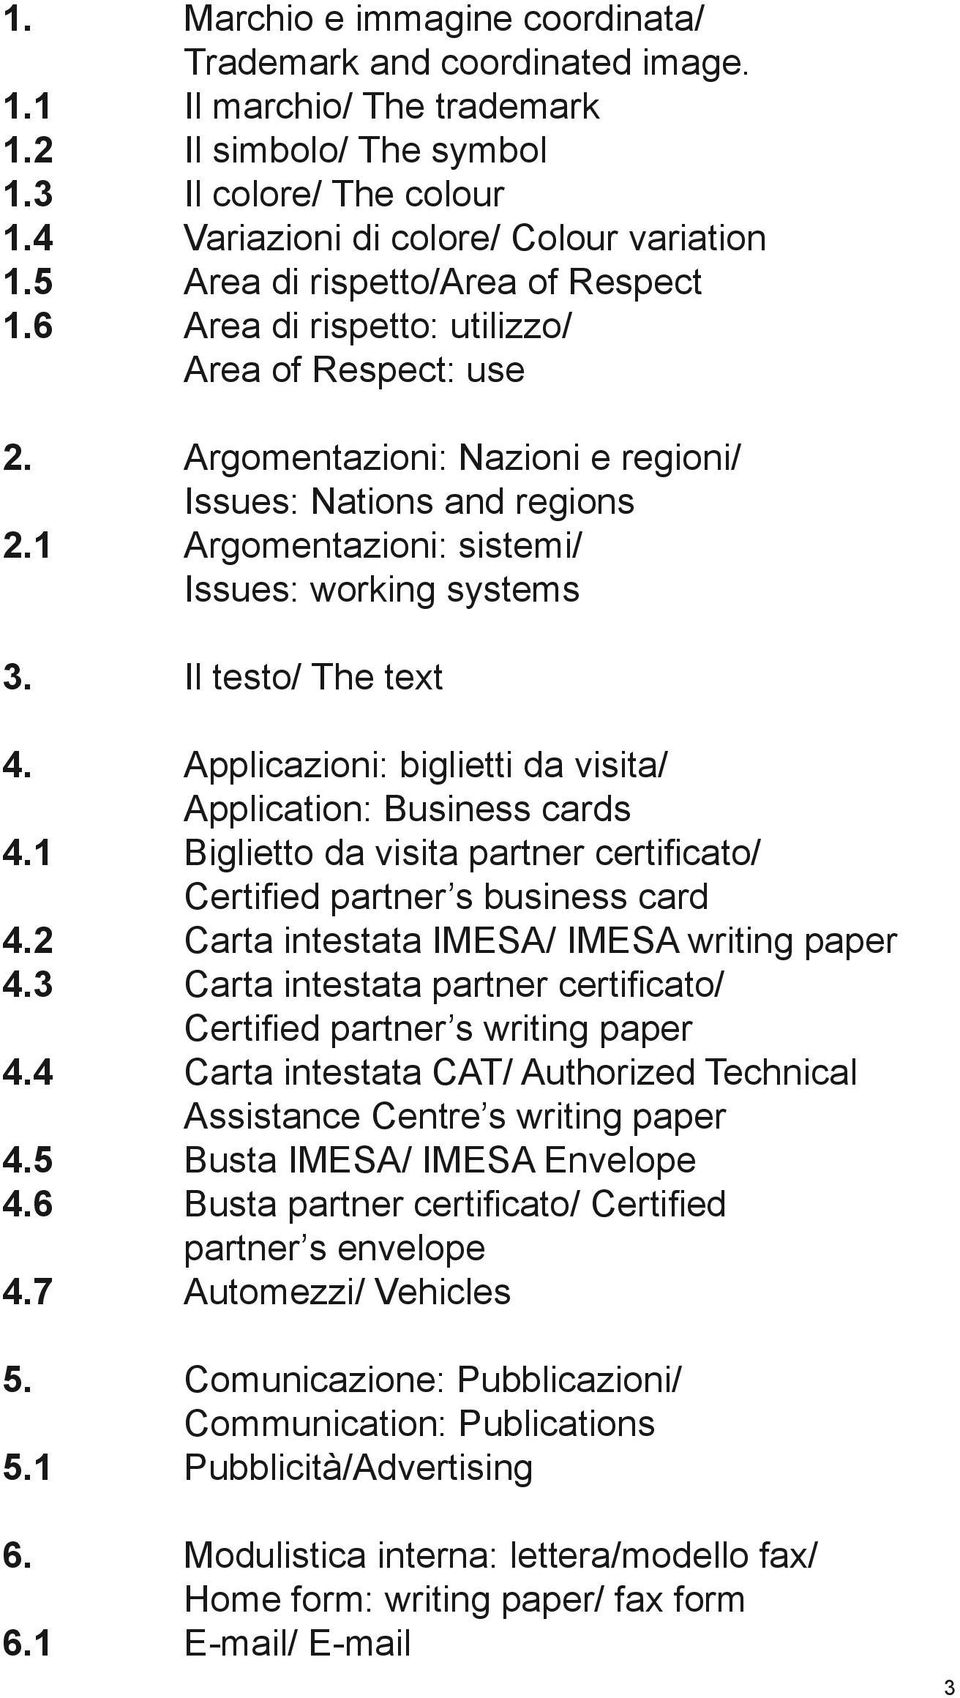 Argomentazioni: Nazioni e regioni/ Issues: Nations and regions Argomentazioni: sistemi/ Issues: working systems Il testo/ The text Applicazioni: biglietti da visita/ Application: Business cards